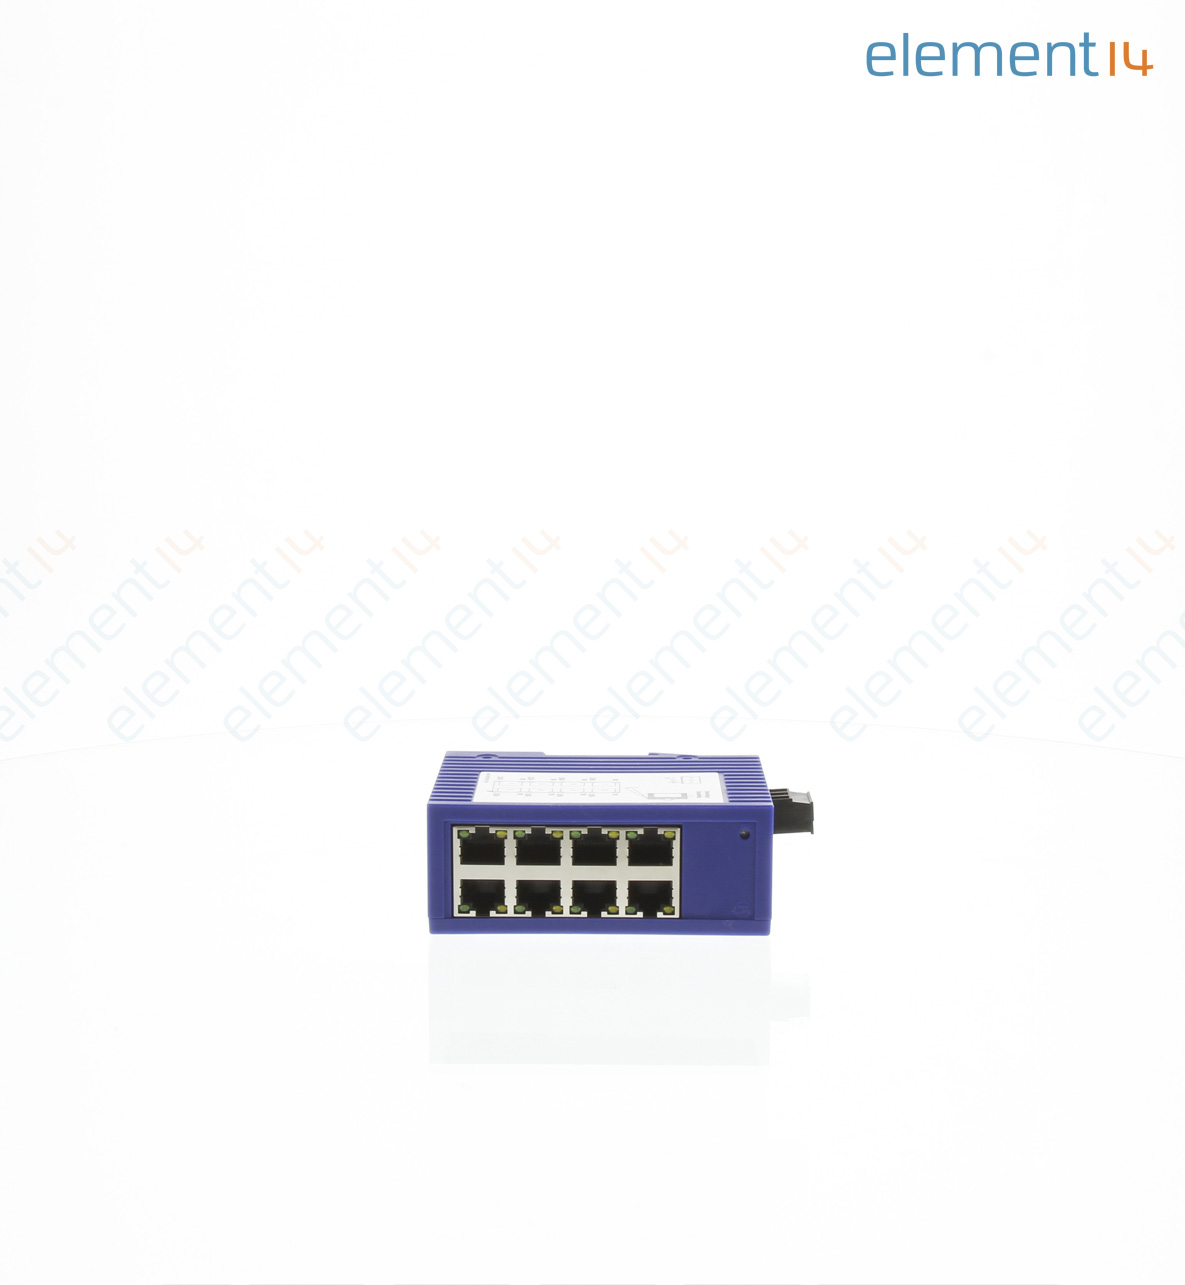 943 376 001 Hirschmann Switch 8 Ports Industrial Fast Ethernet Wiring Diagram Add To Compare